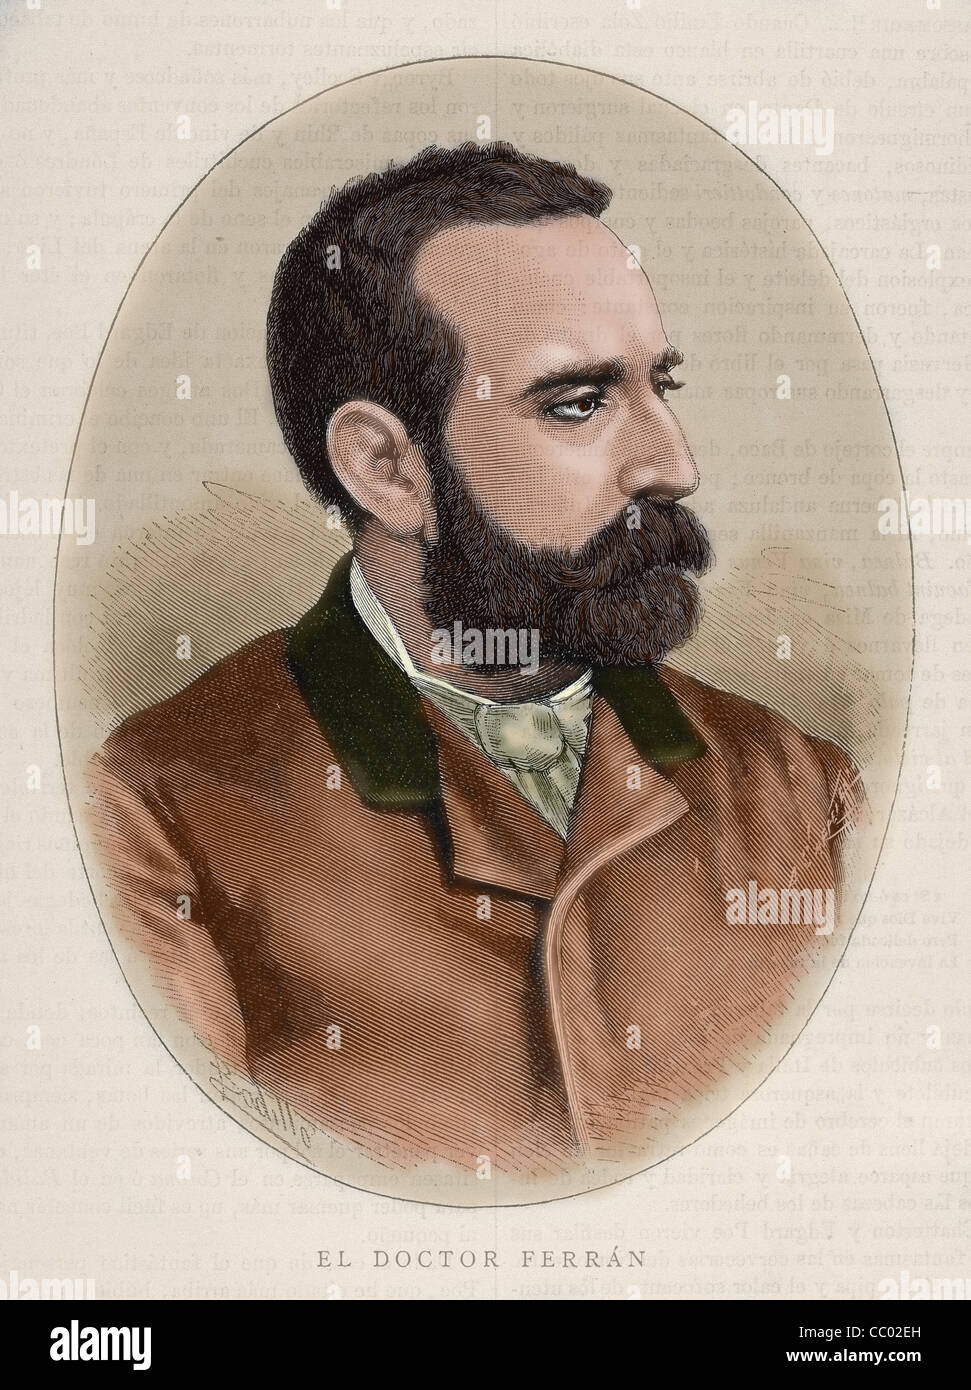 FERRAN, Jaime (1852-1929). Spanish bacteriologist. Colored engraving. By Carretero. - Stock Image